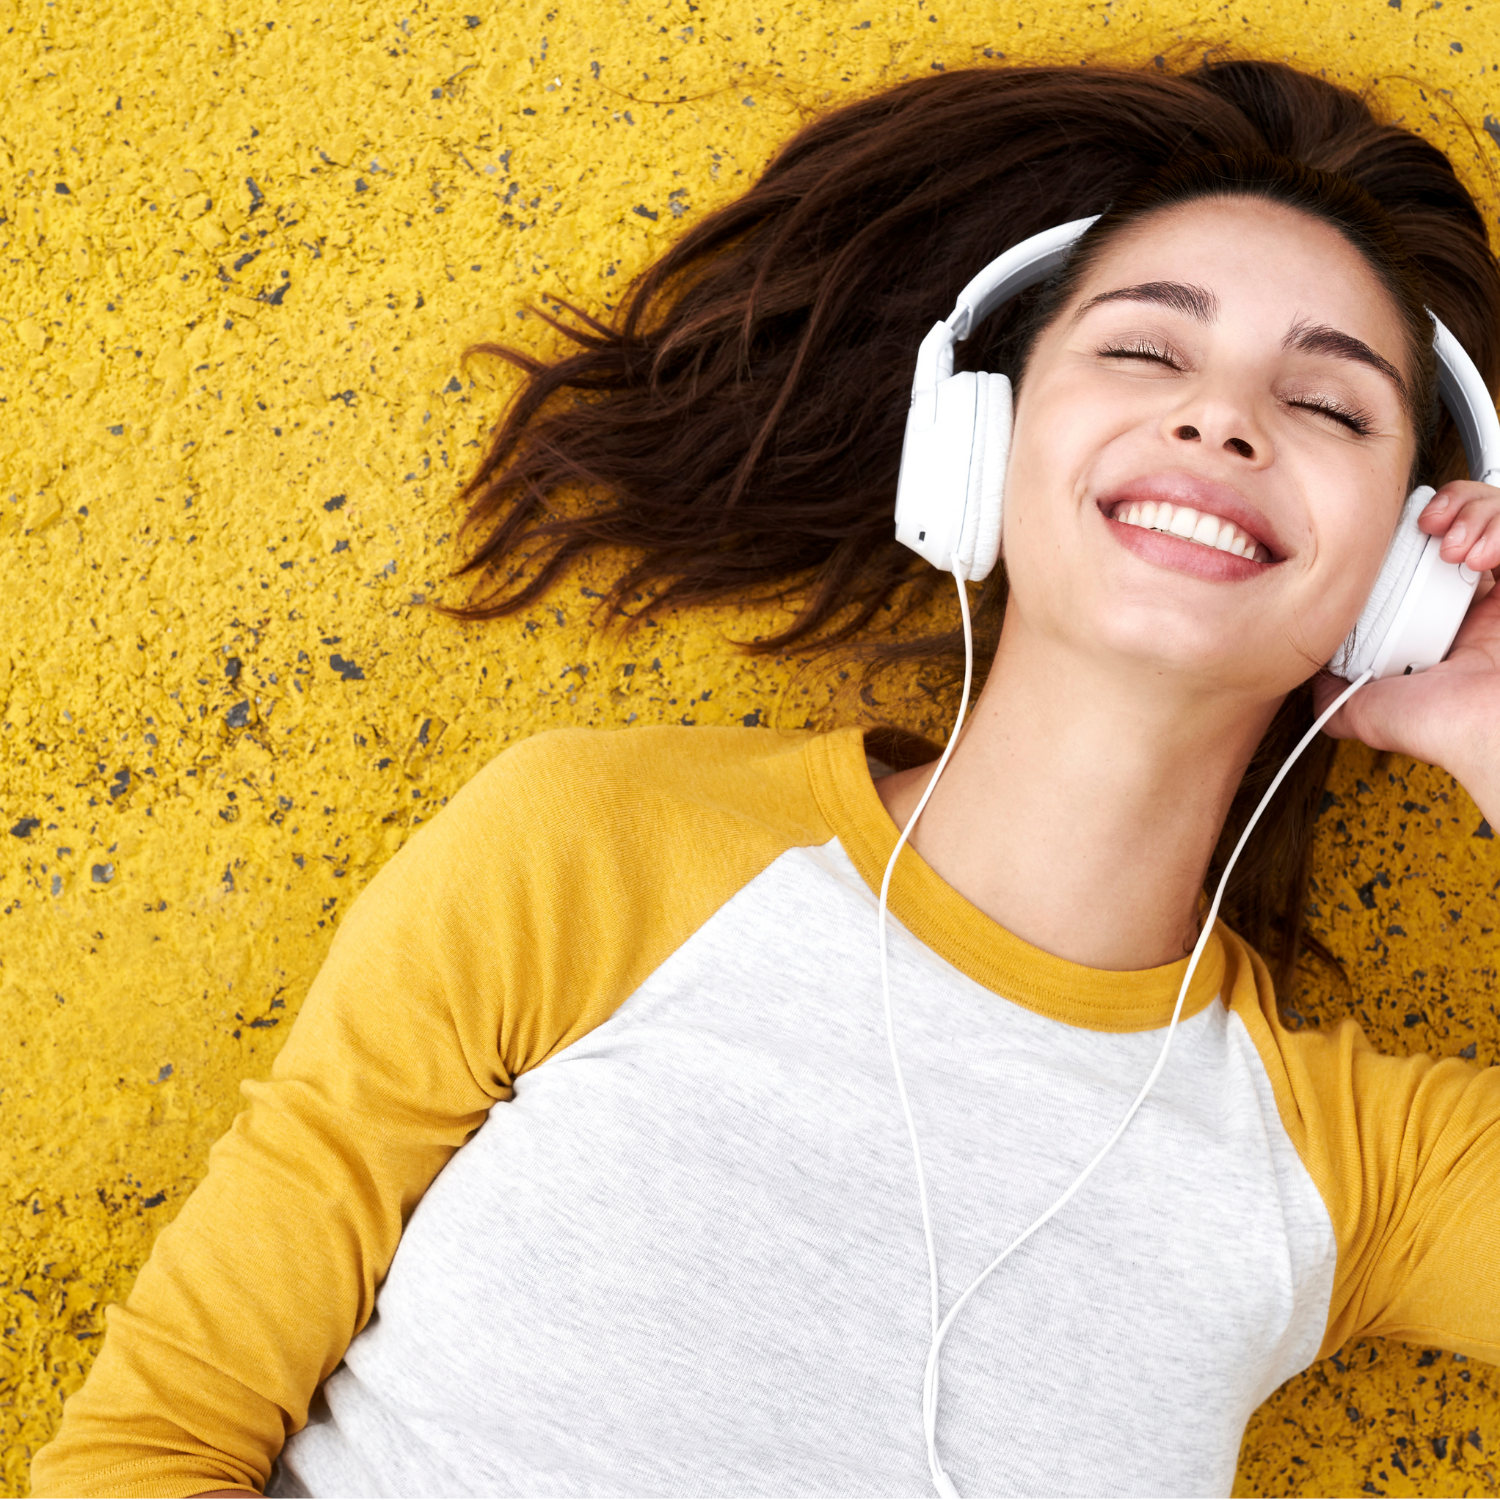 10 Undeniable Psychological Benefits Of Listening to Music